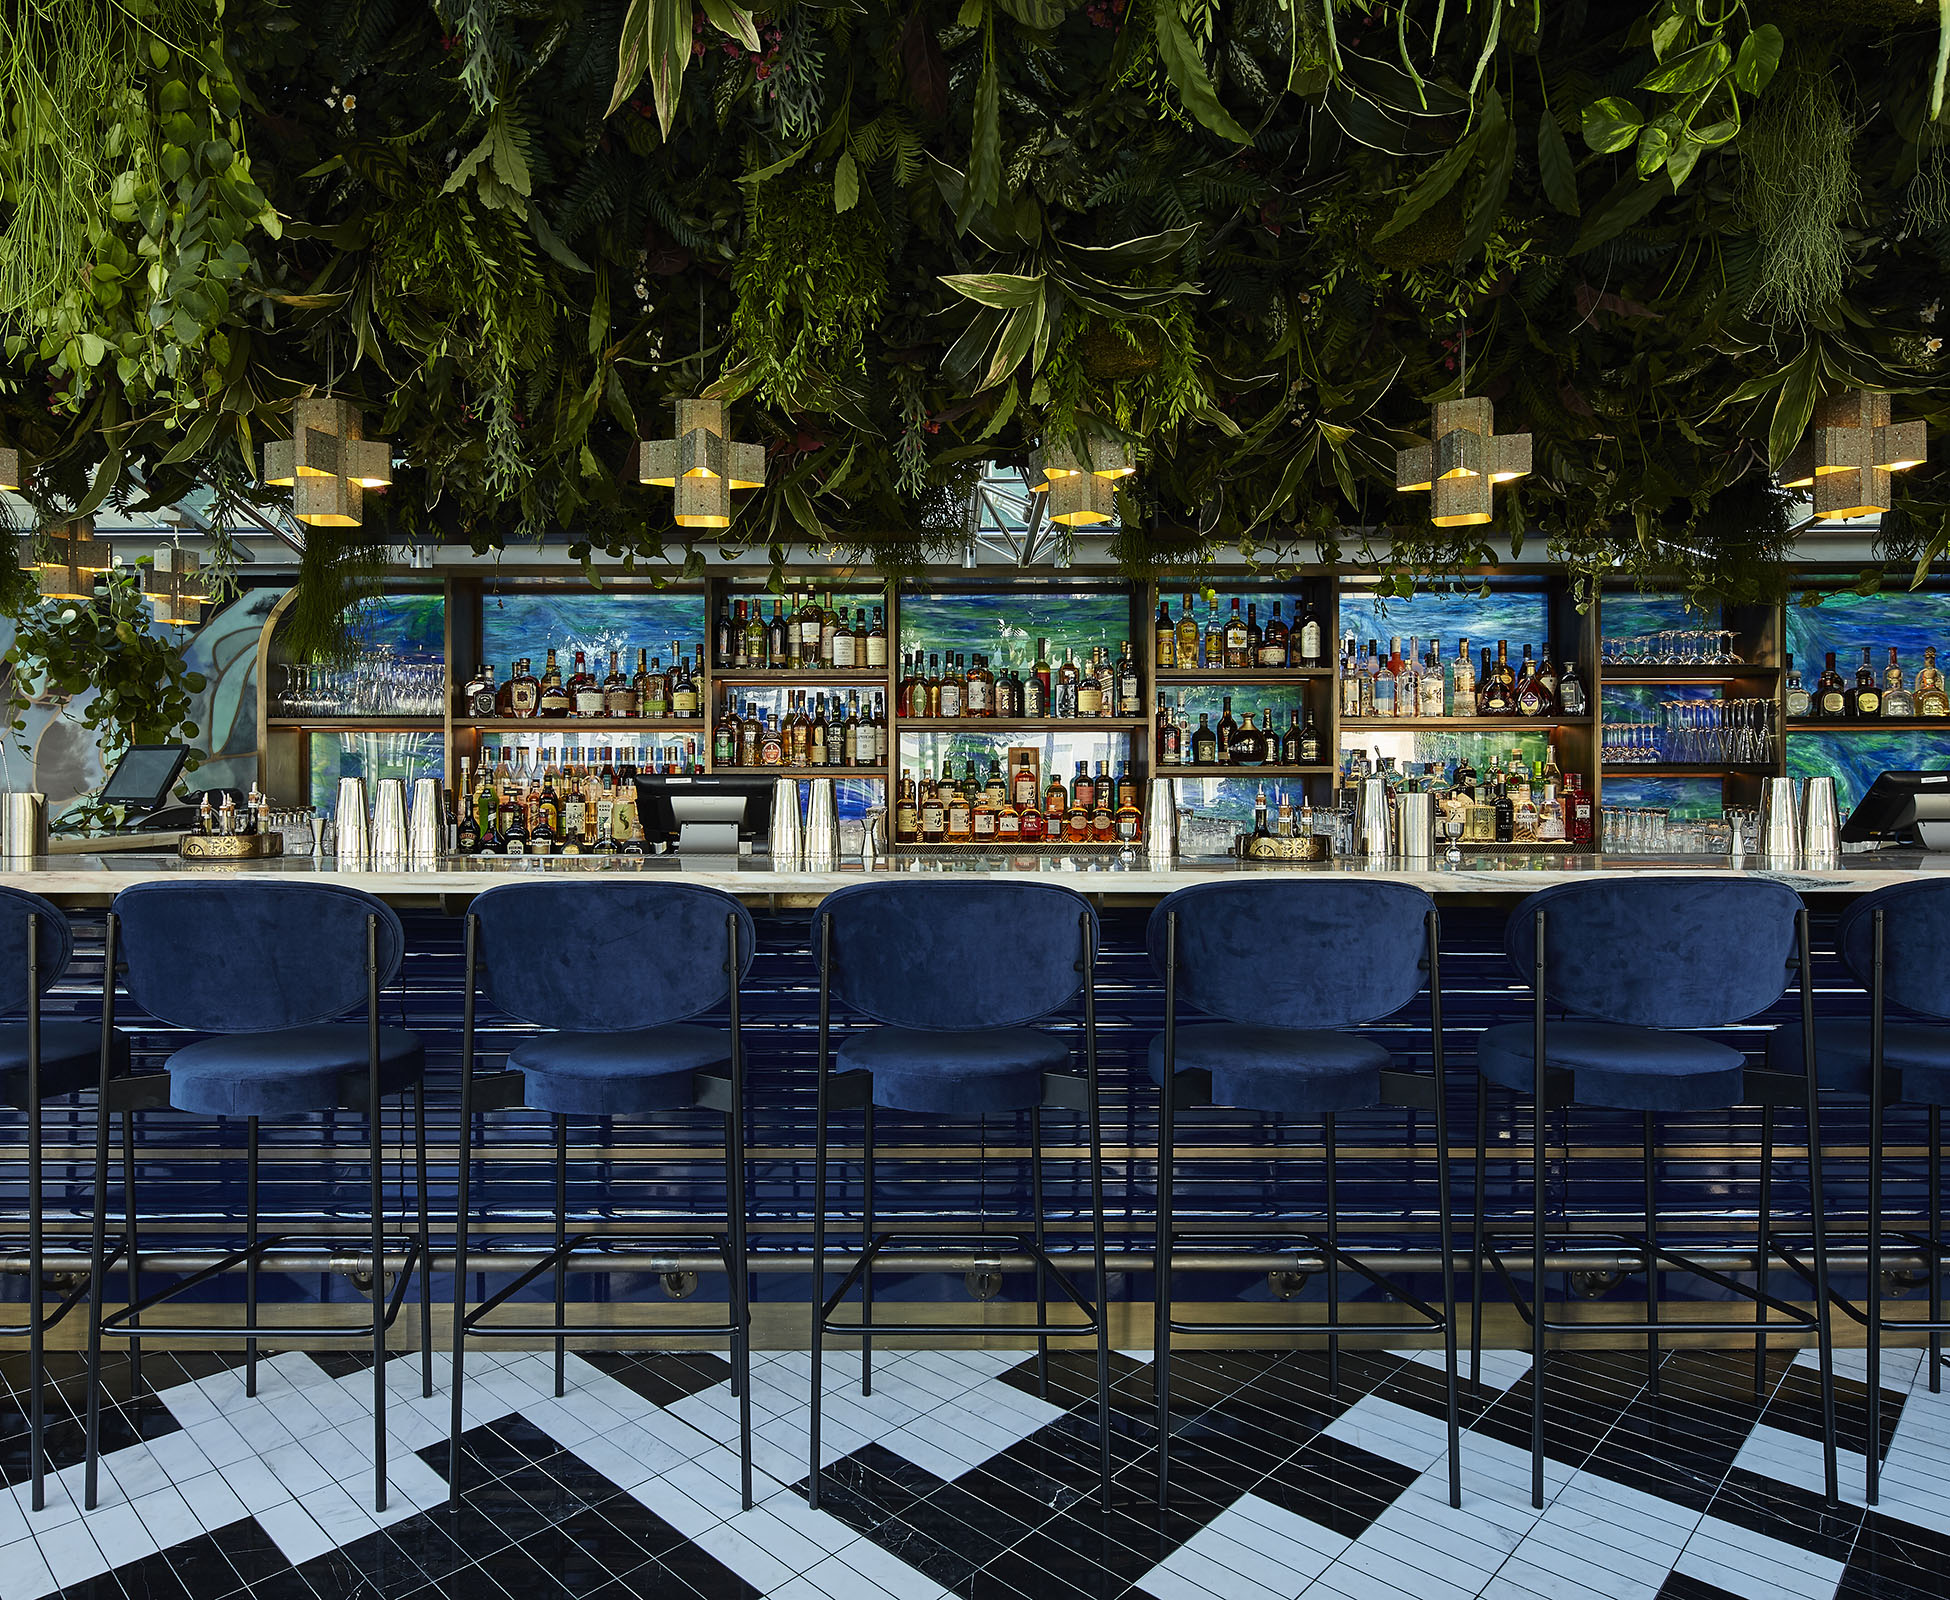 A suspended living ceiling of plants hovers above the cocktail bar at Sushisamba Covent Garden. It is created using a diverse range of plants from Asia and South America to reflect the restaurant's origins.